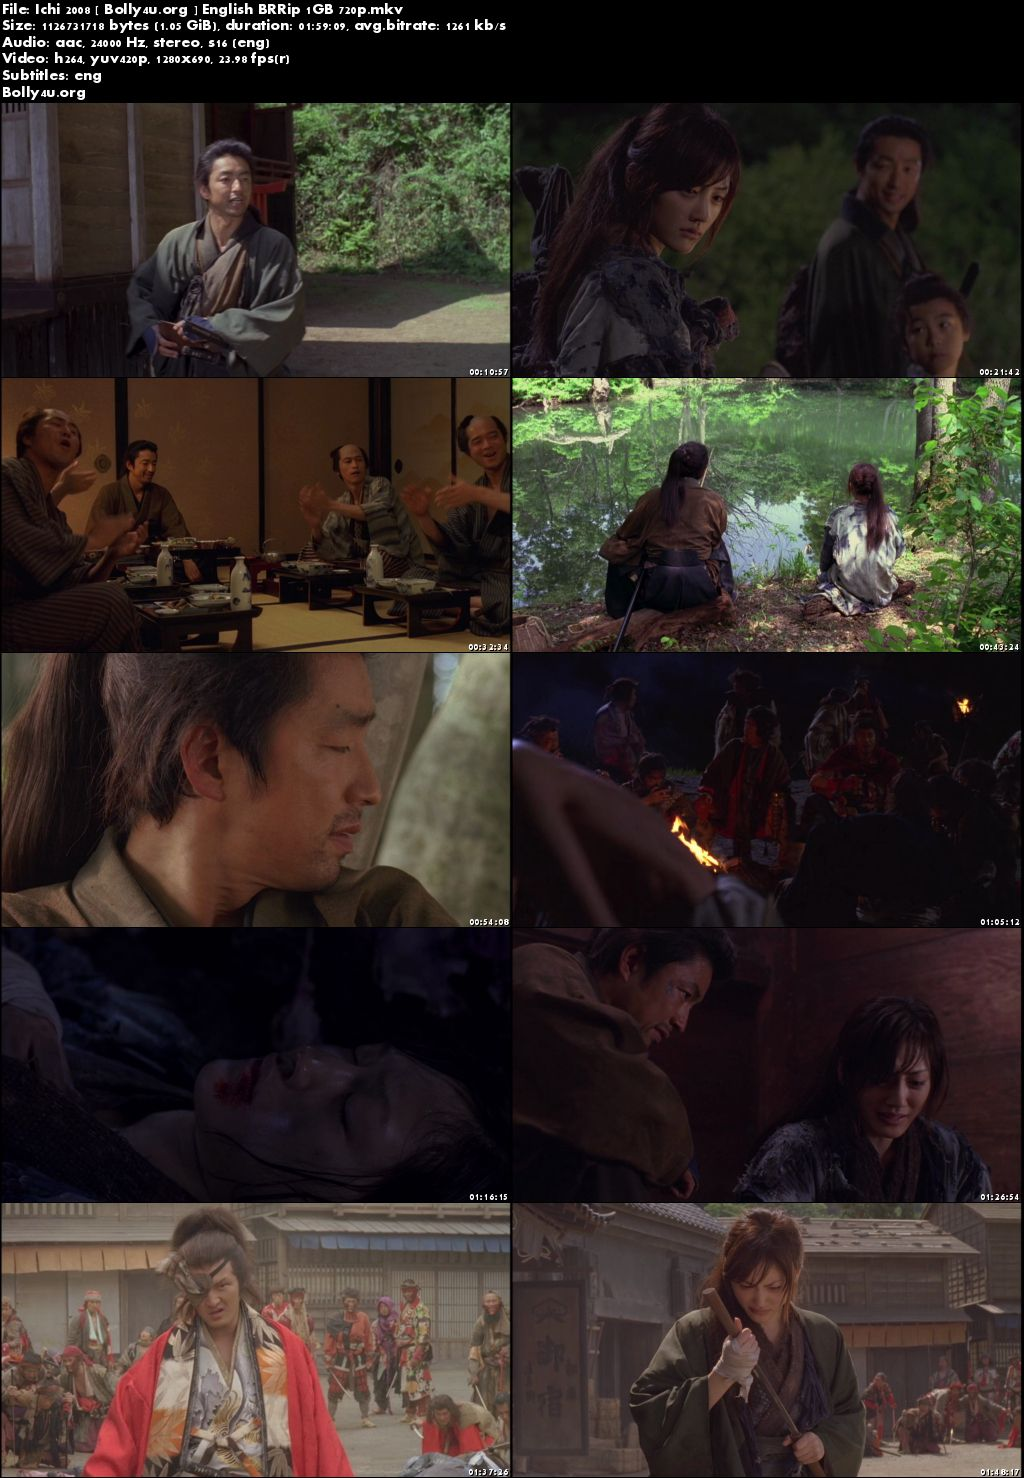 Ichi 2008 BluRay 1GB English Movie 720p ESub Download